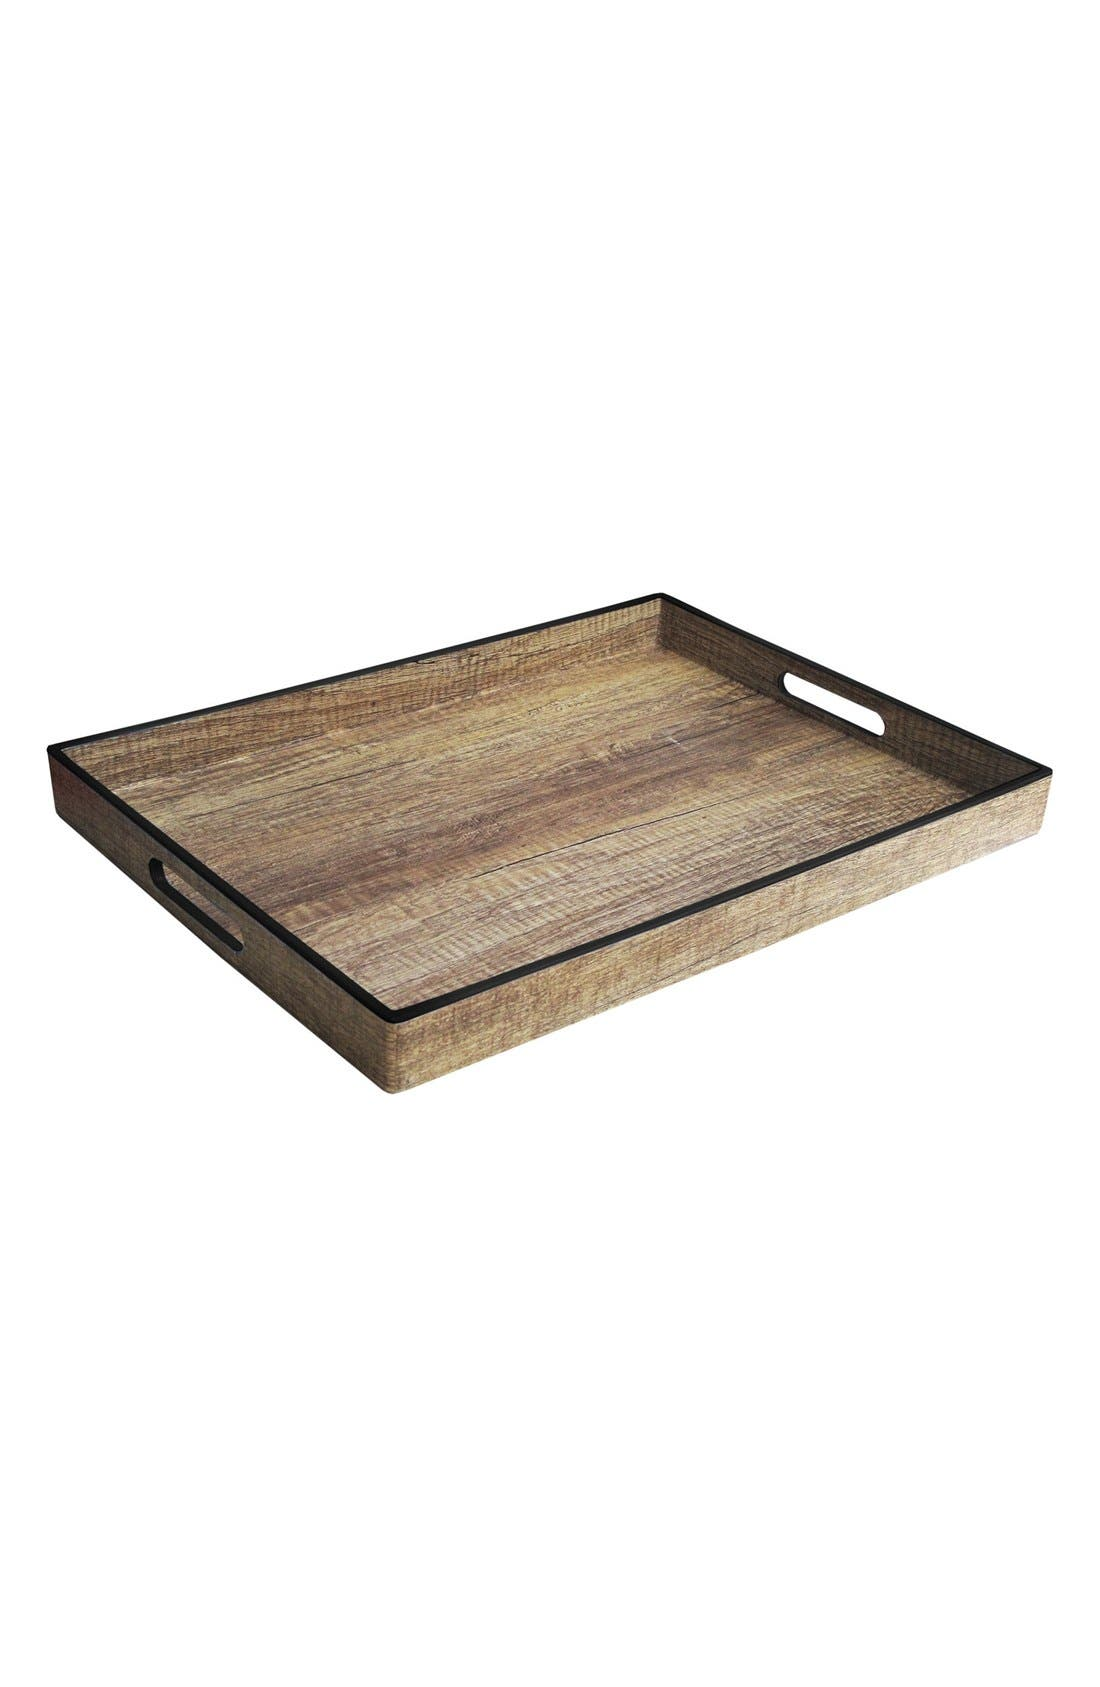 Alternate Image 1 Selected - American Atelier Poplar Finish Tray